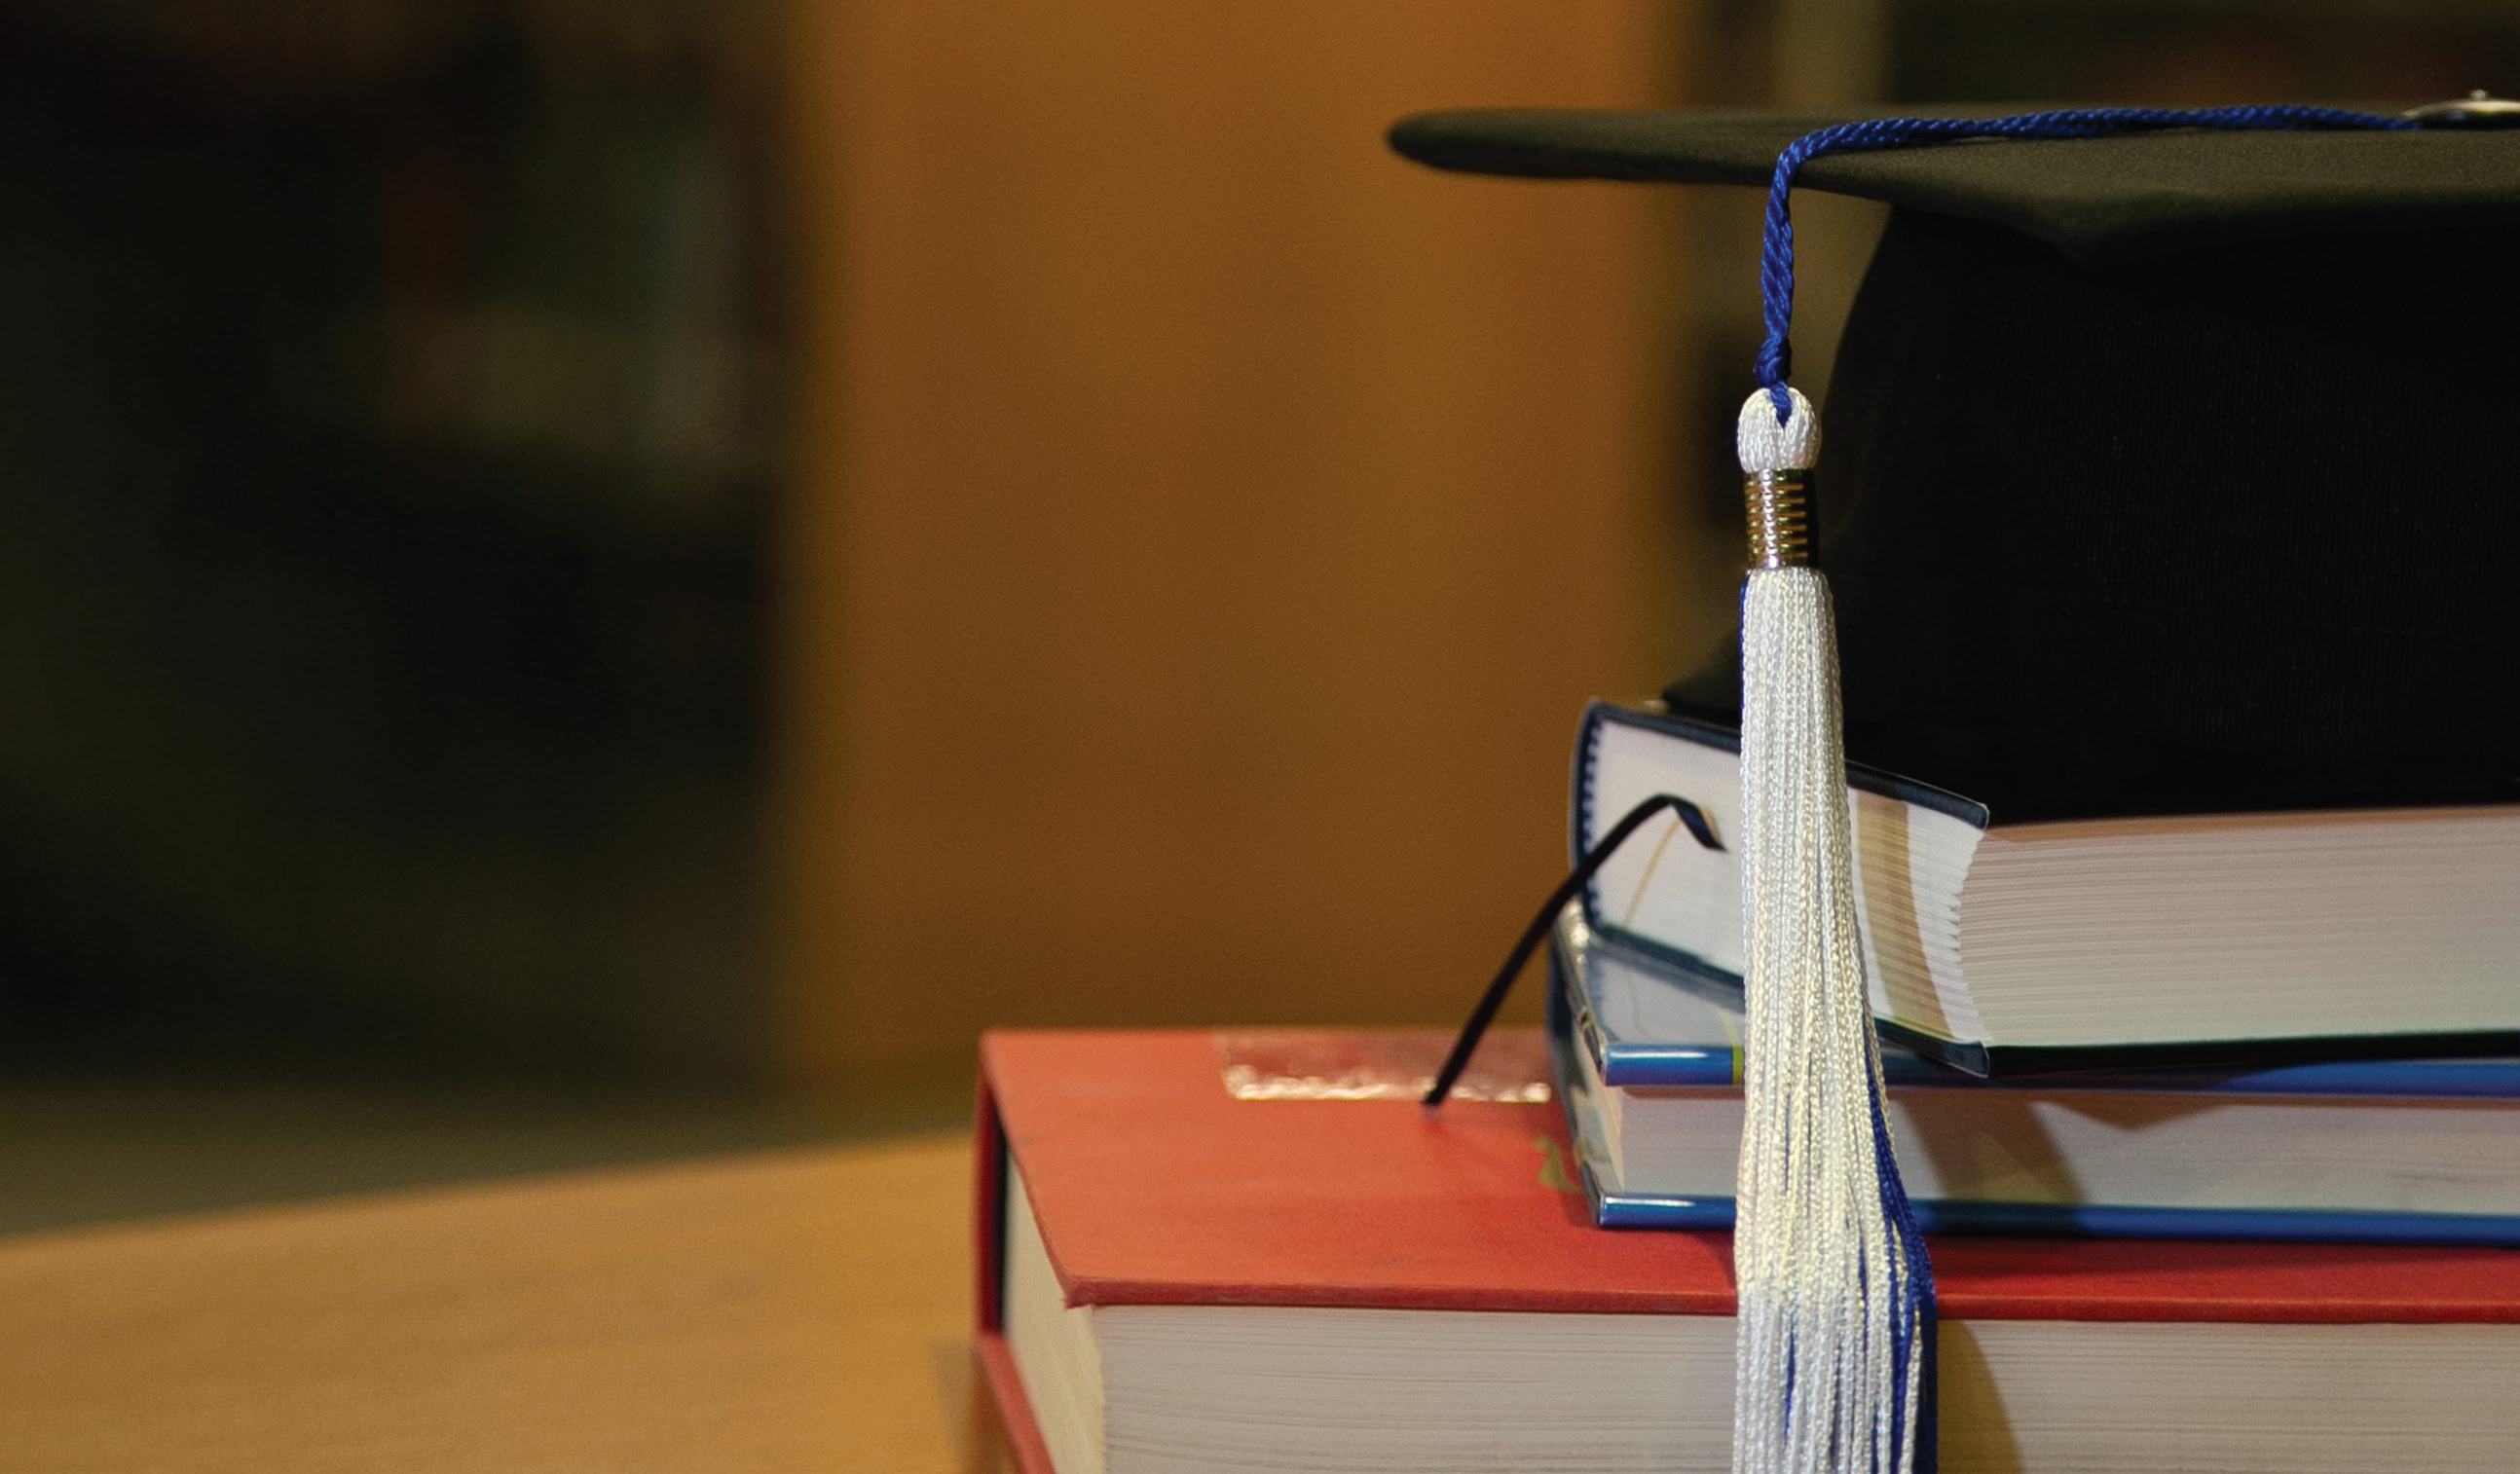 mortar board on top of books